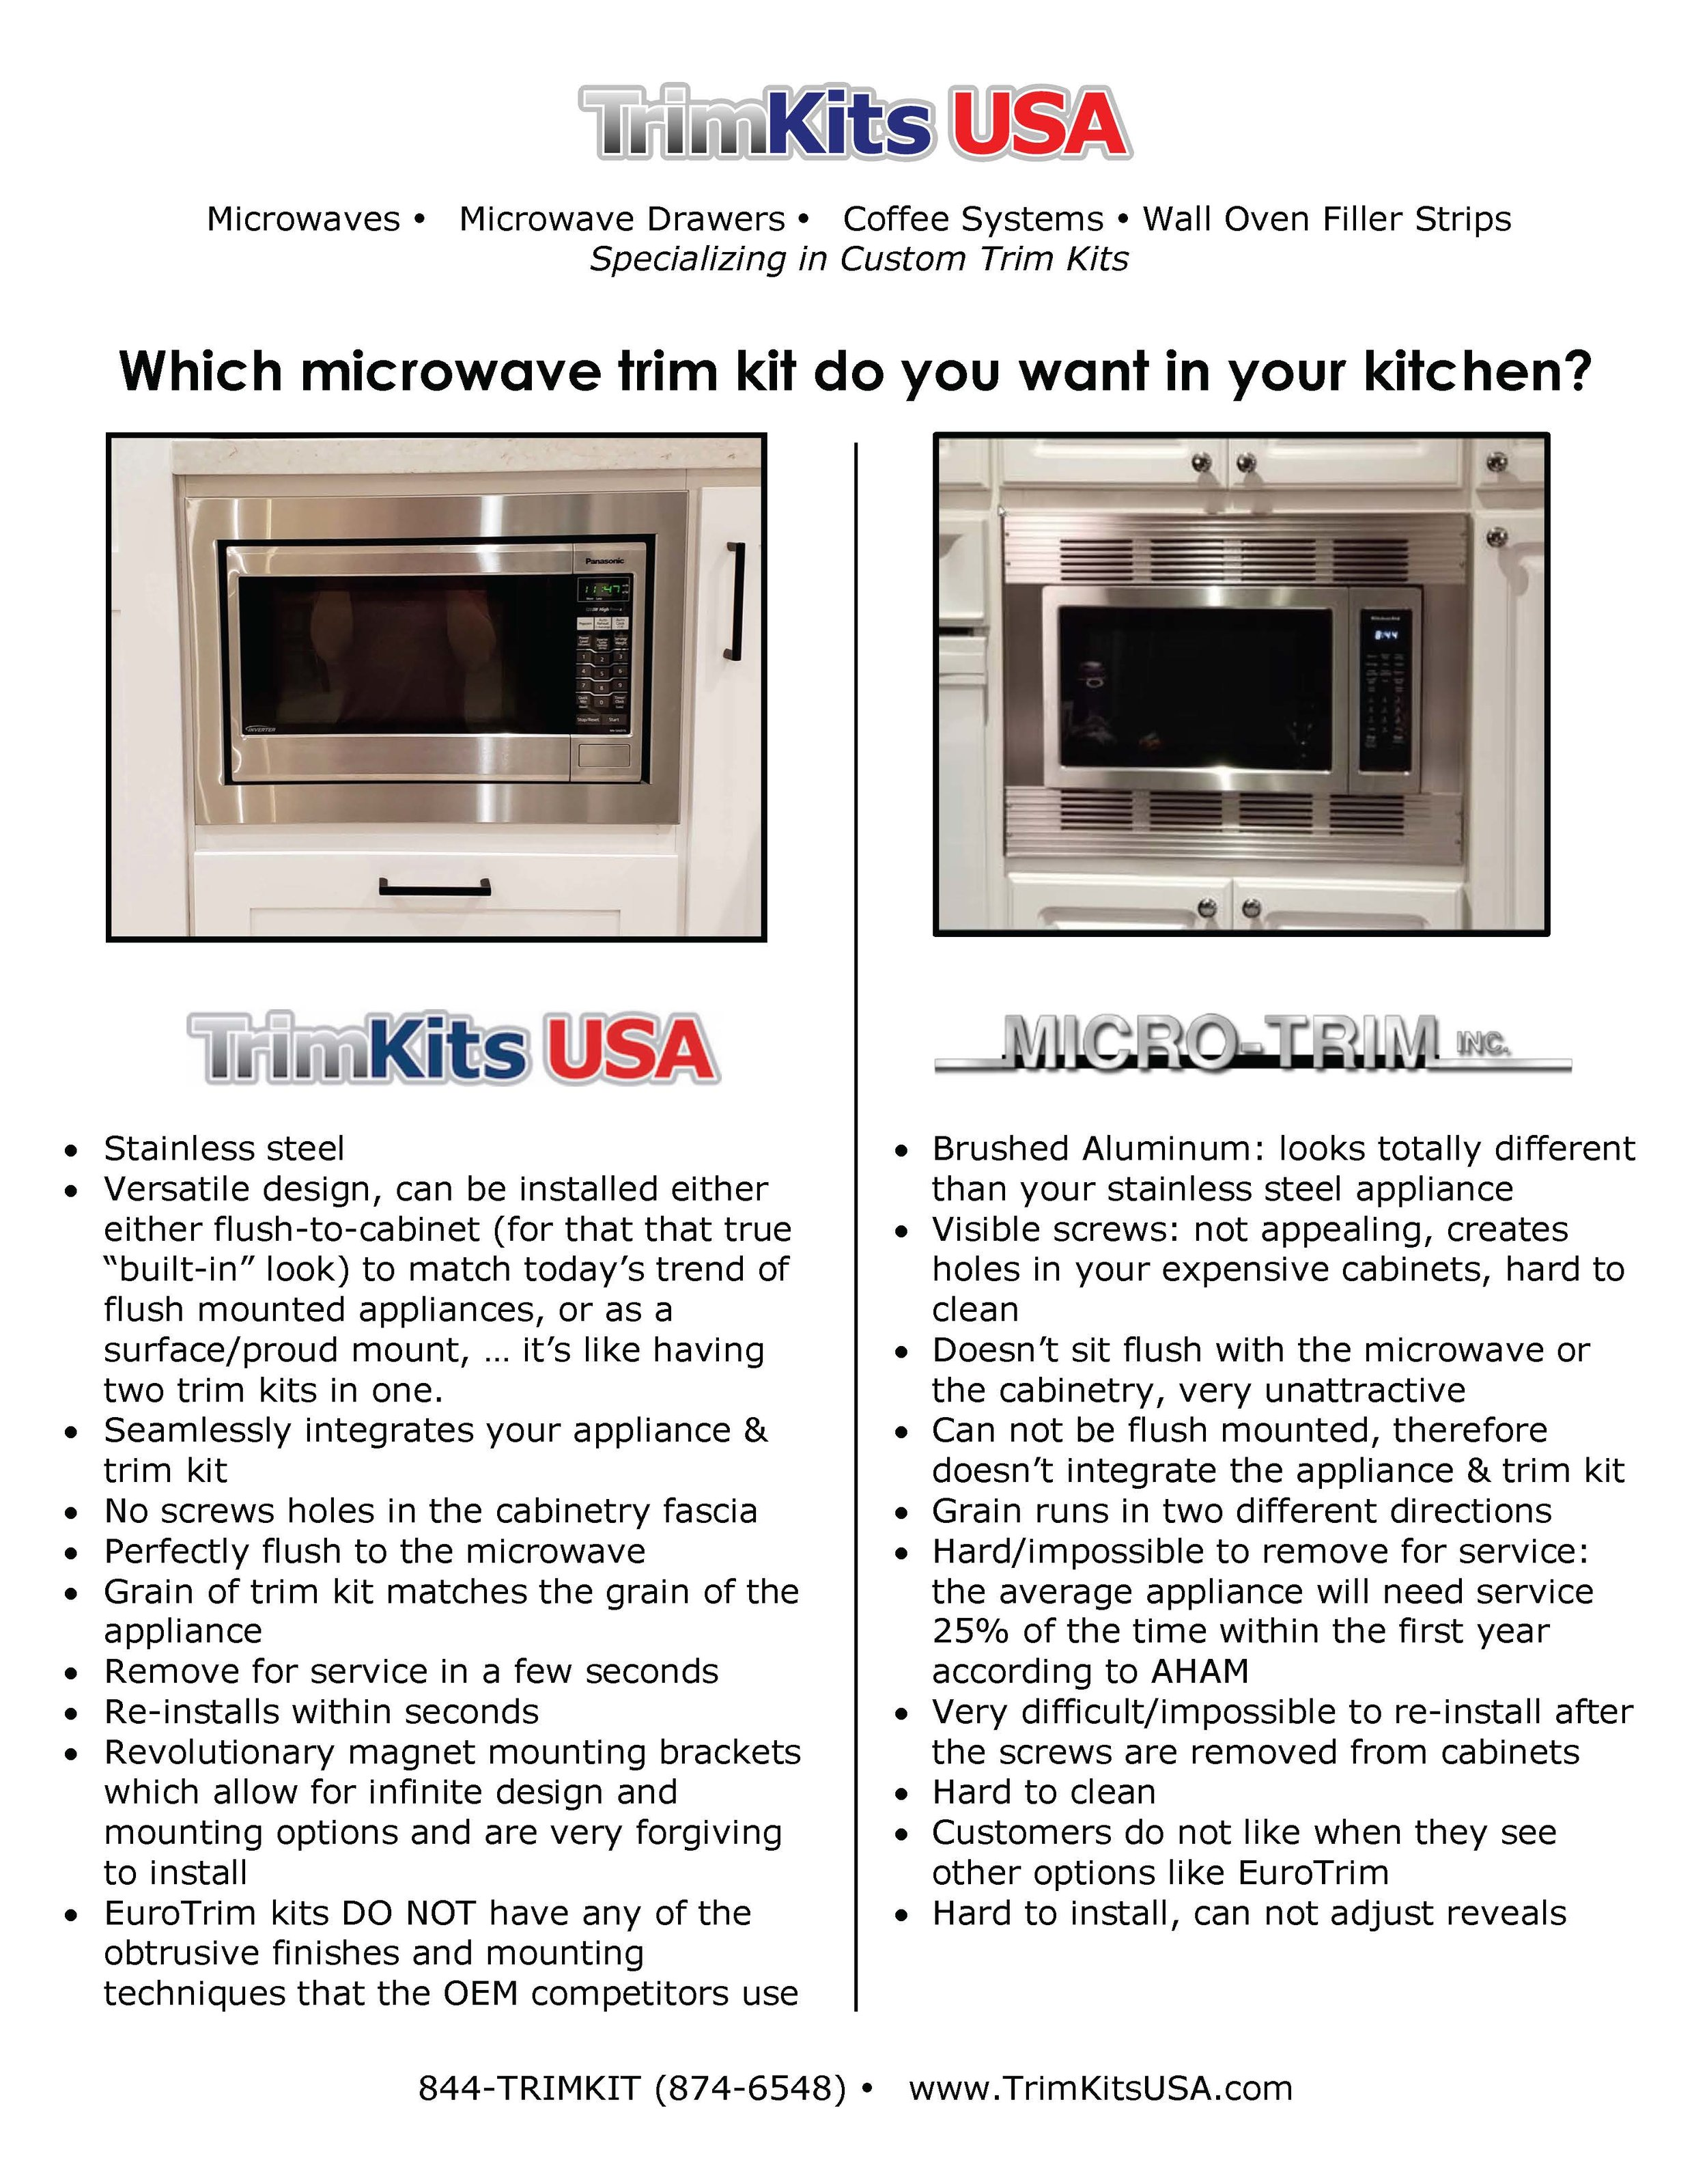 Which microwave trim kit do you want in your kitchen? -